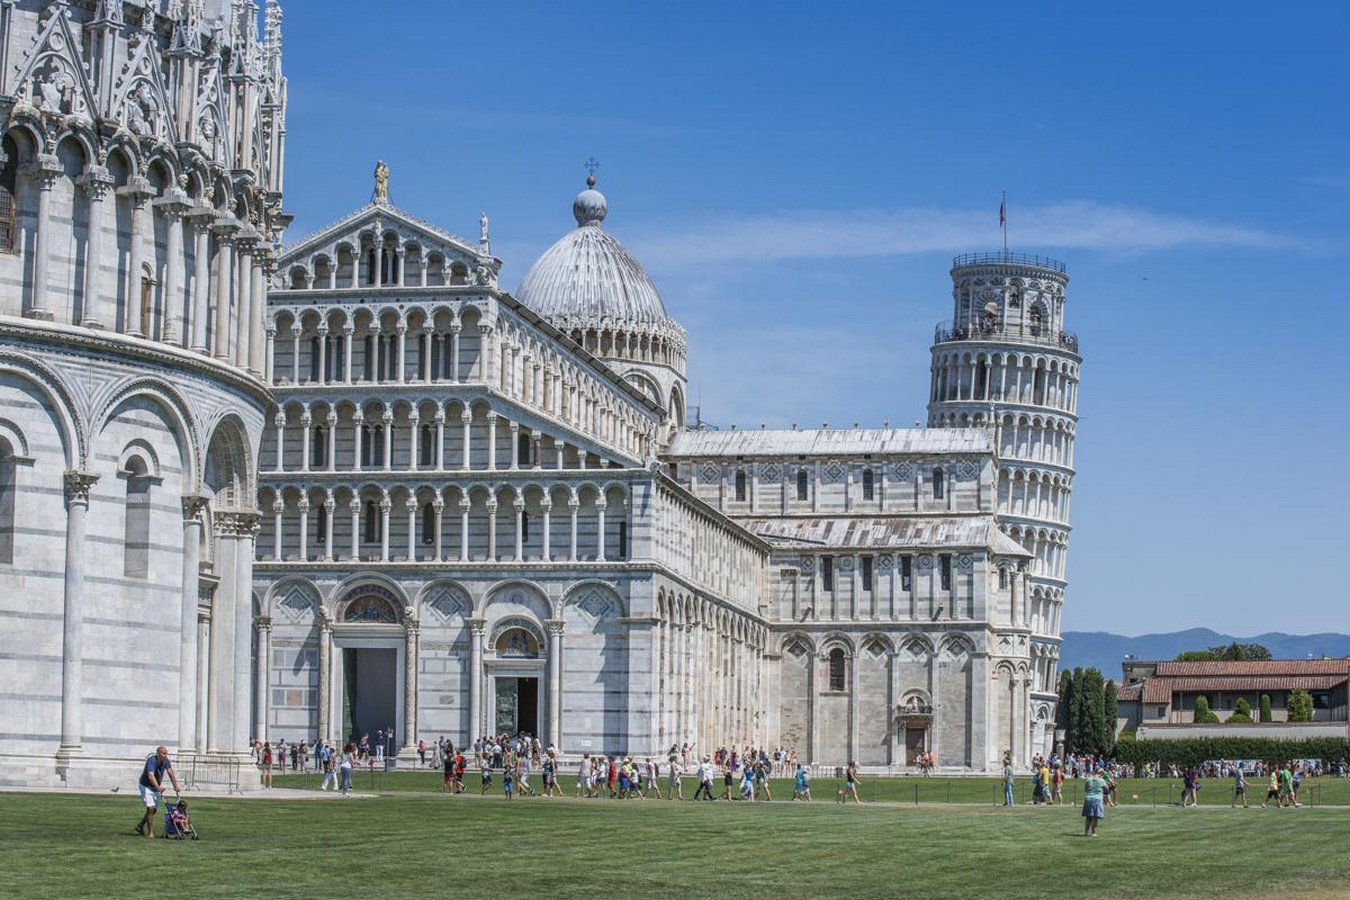 Leaning Tower of Pisa - Sheet2